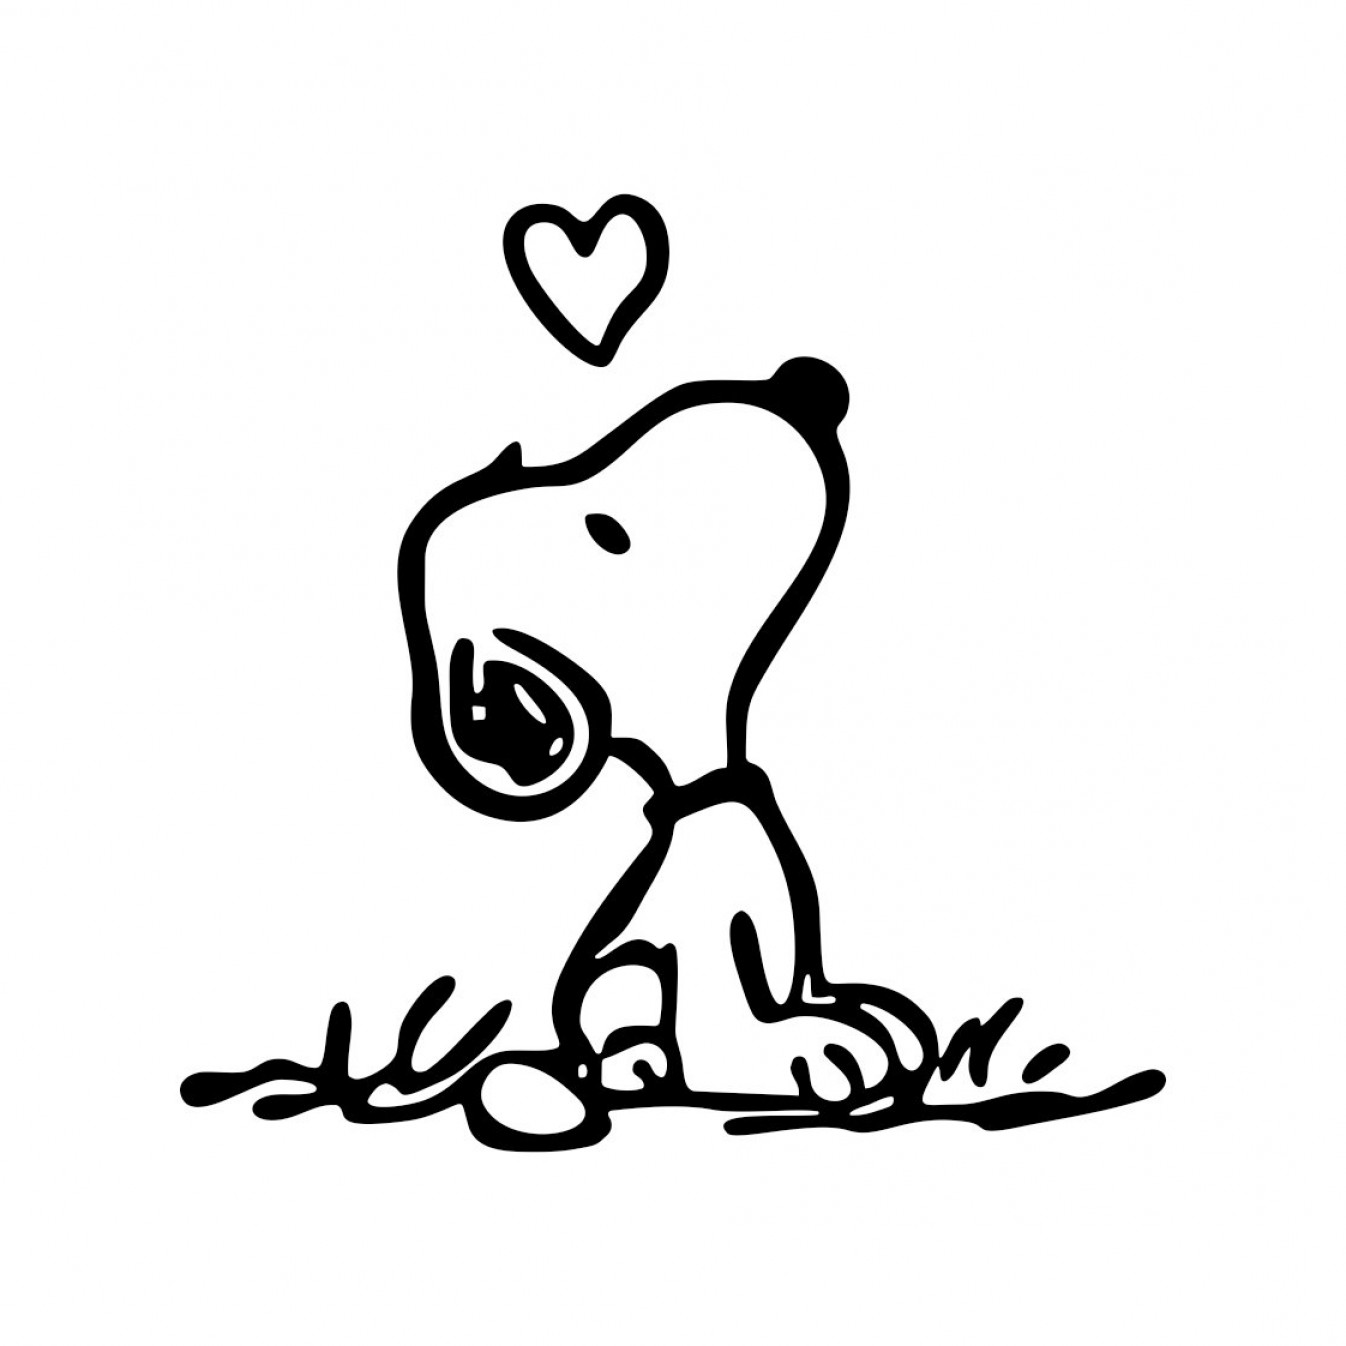 Snoopy Vector Graphic: Snoopy Love Graphics Design Svg Dxf Eps Png Cdr Ai Pdf Vector Art Clipart Instant Download Digital Cut Print Files T Shirt Vinyl Decal